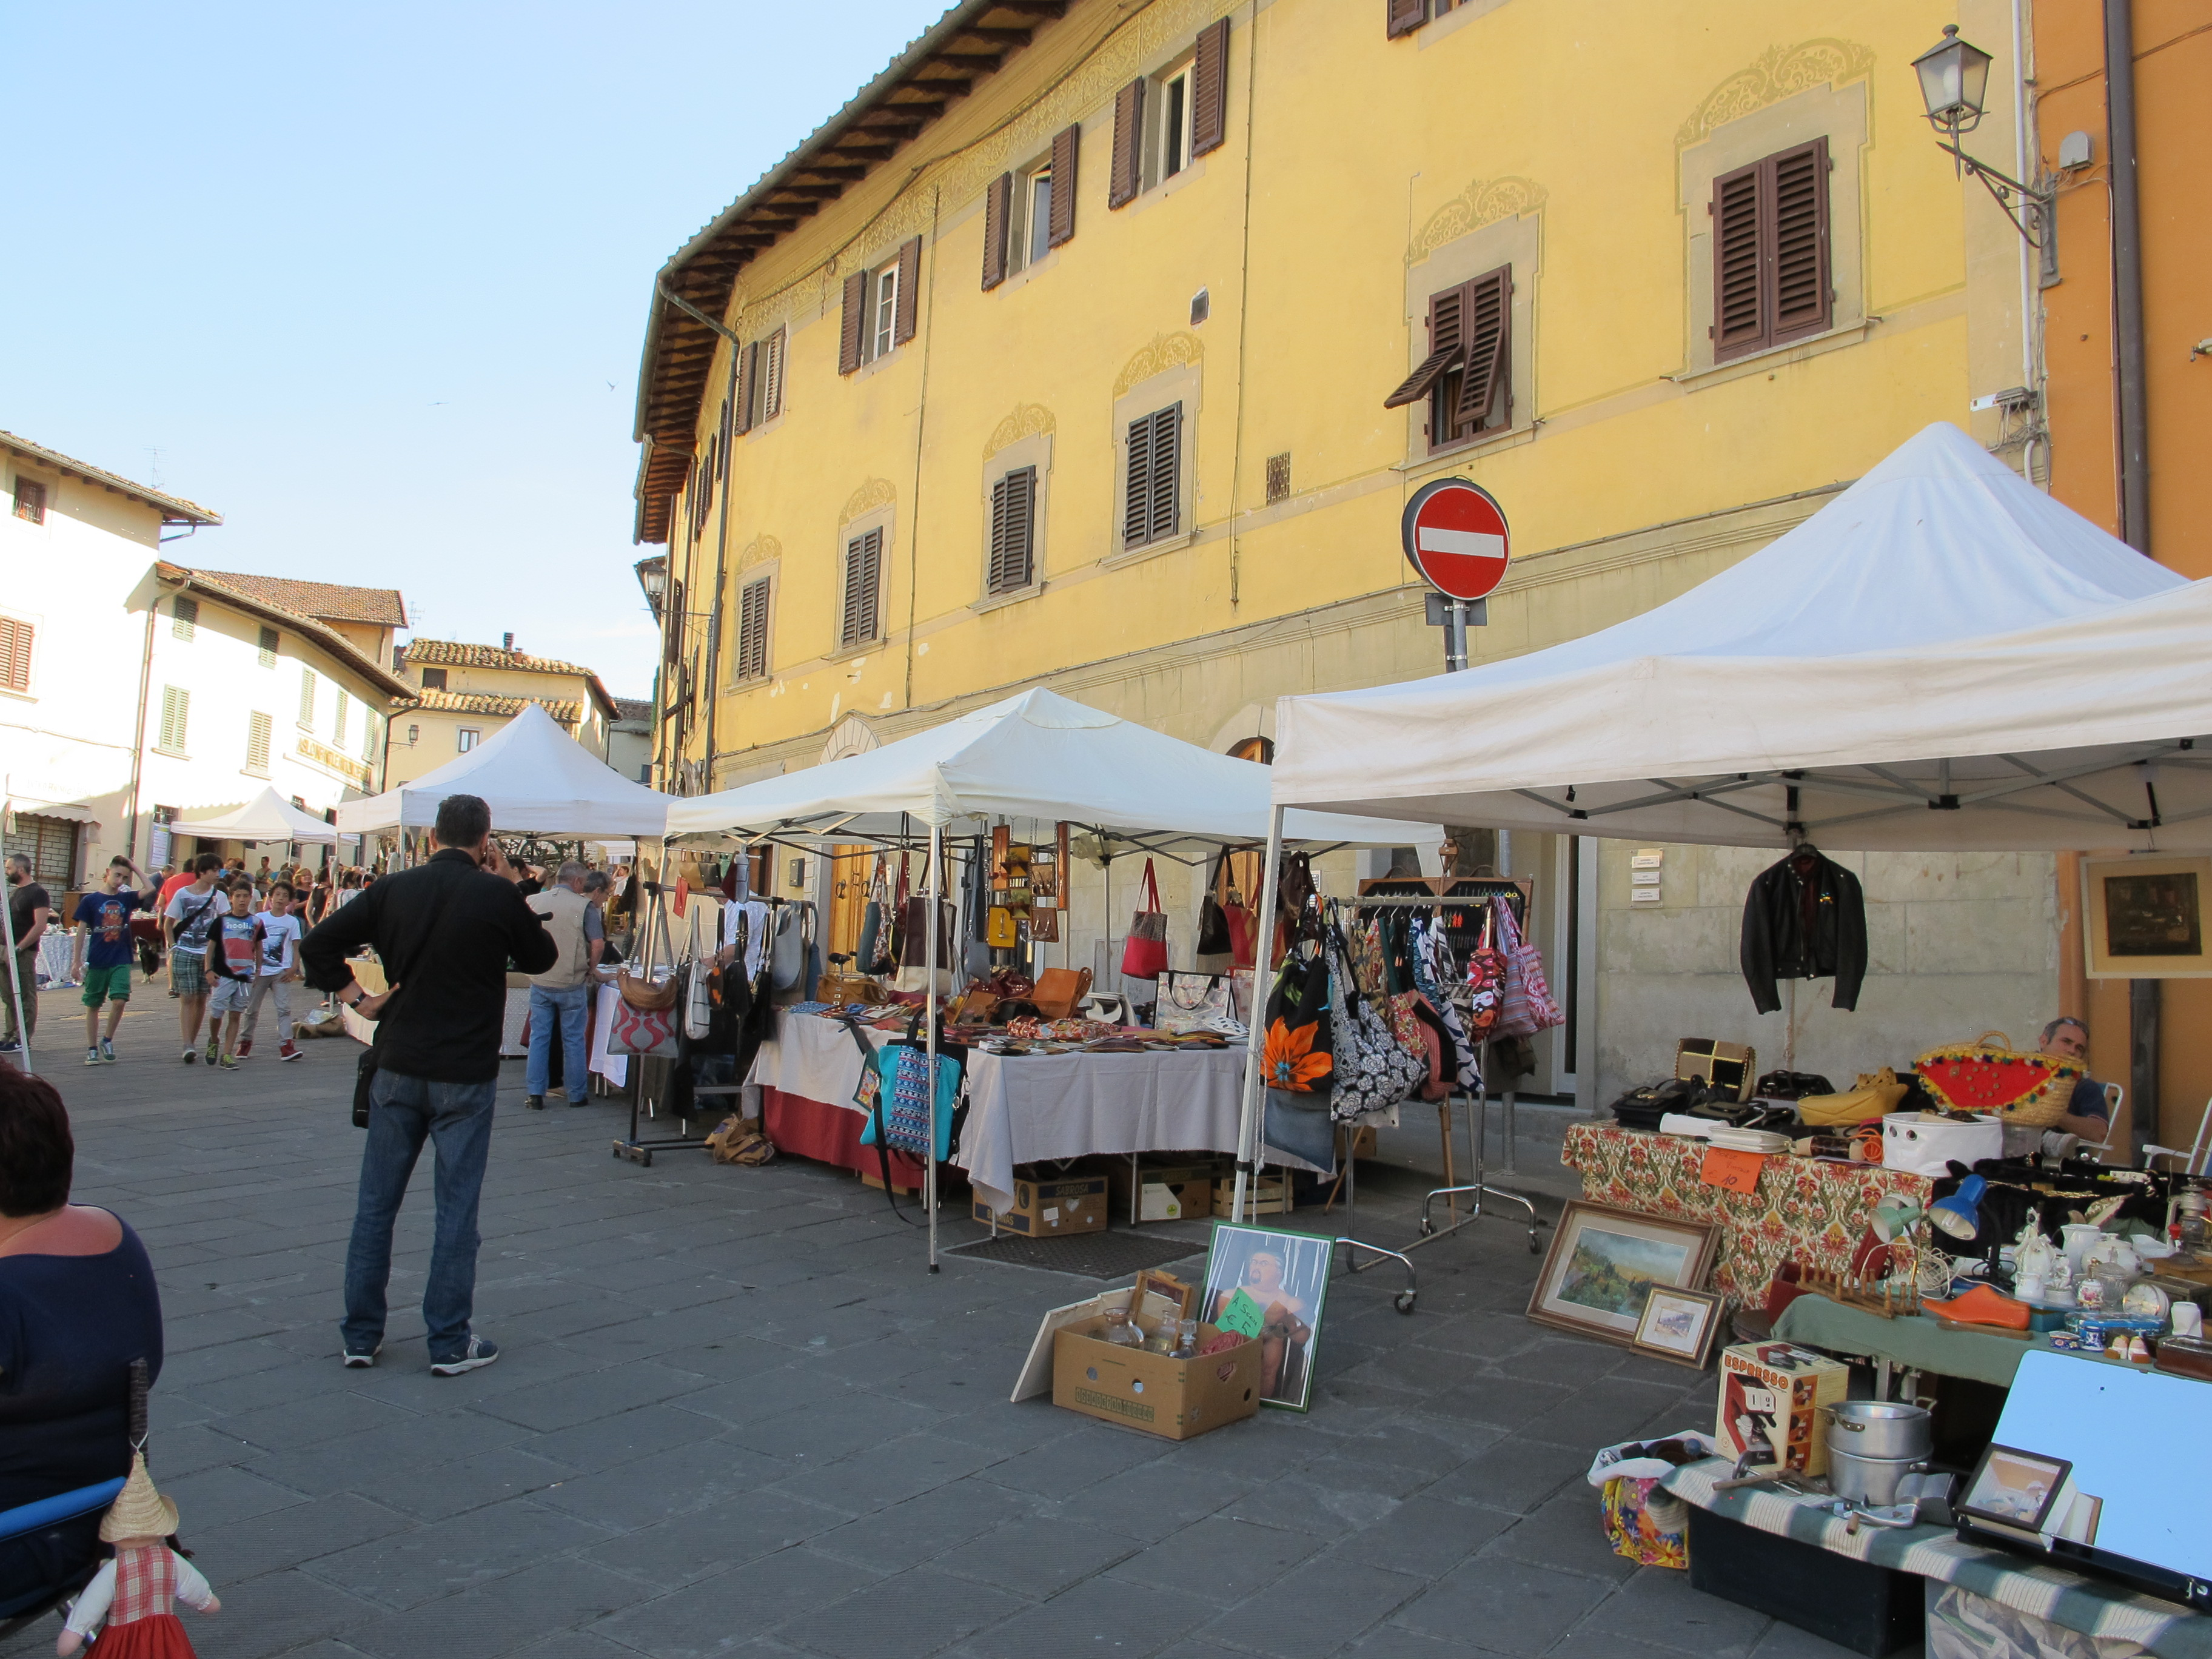 Mercanzie in piazza